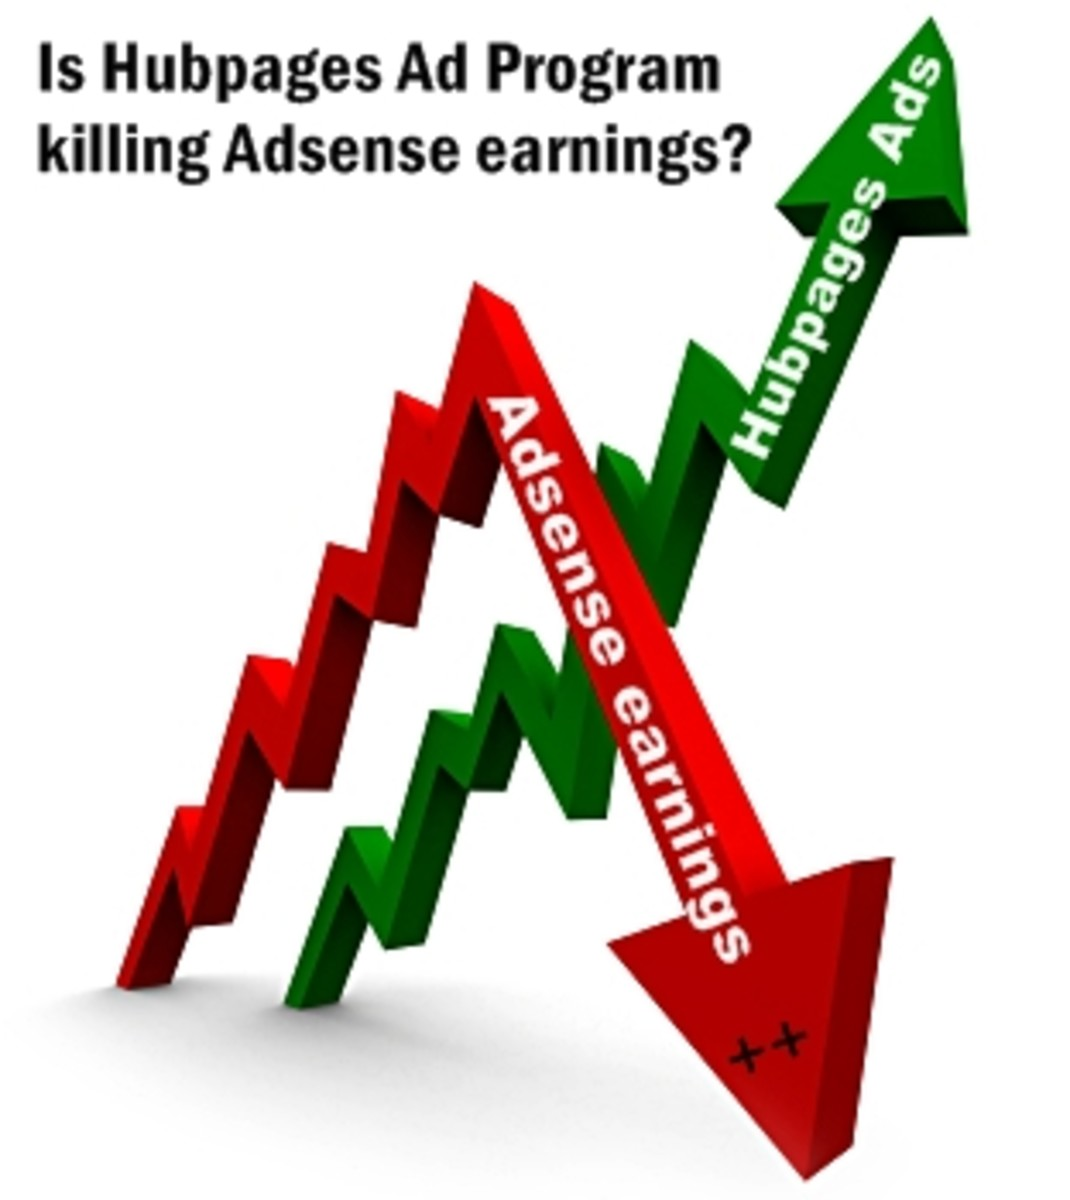 is-hubpages-ad-program-killing-adsense-earnings